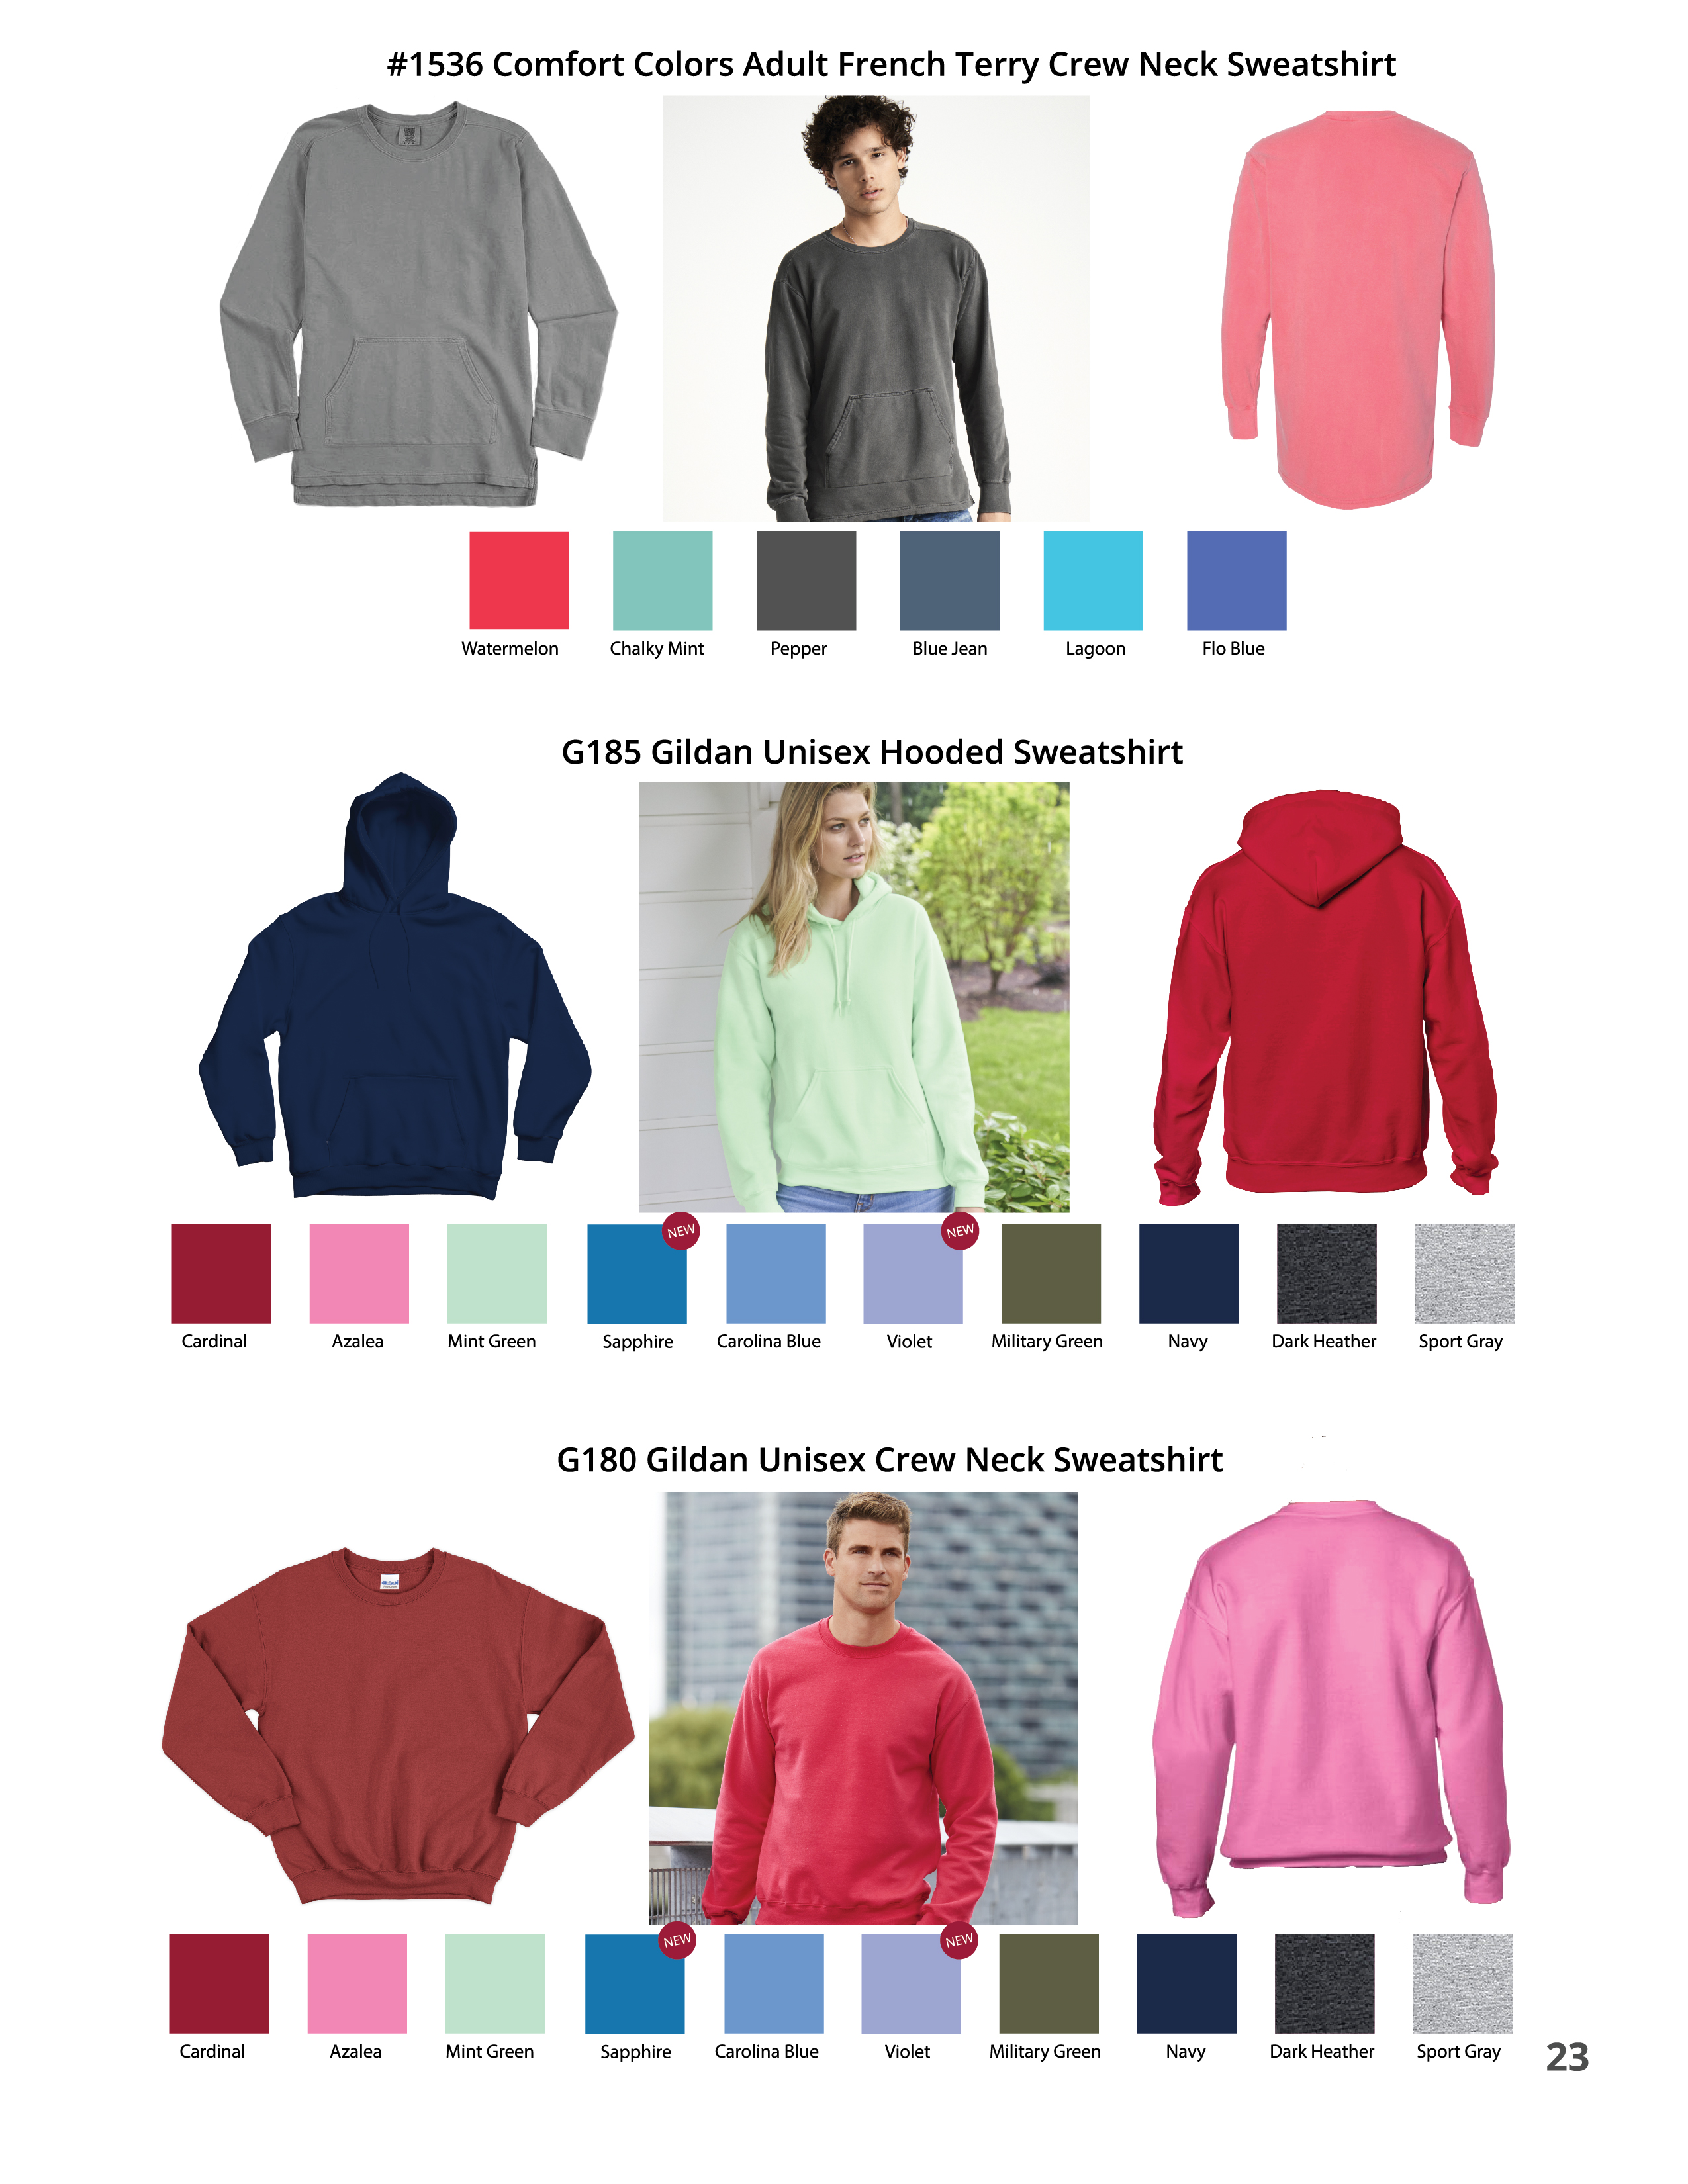 23-colors-apparel-01.jpg